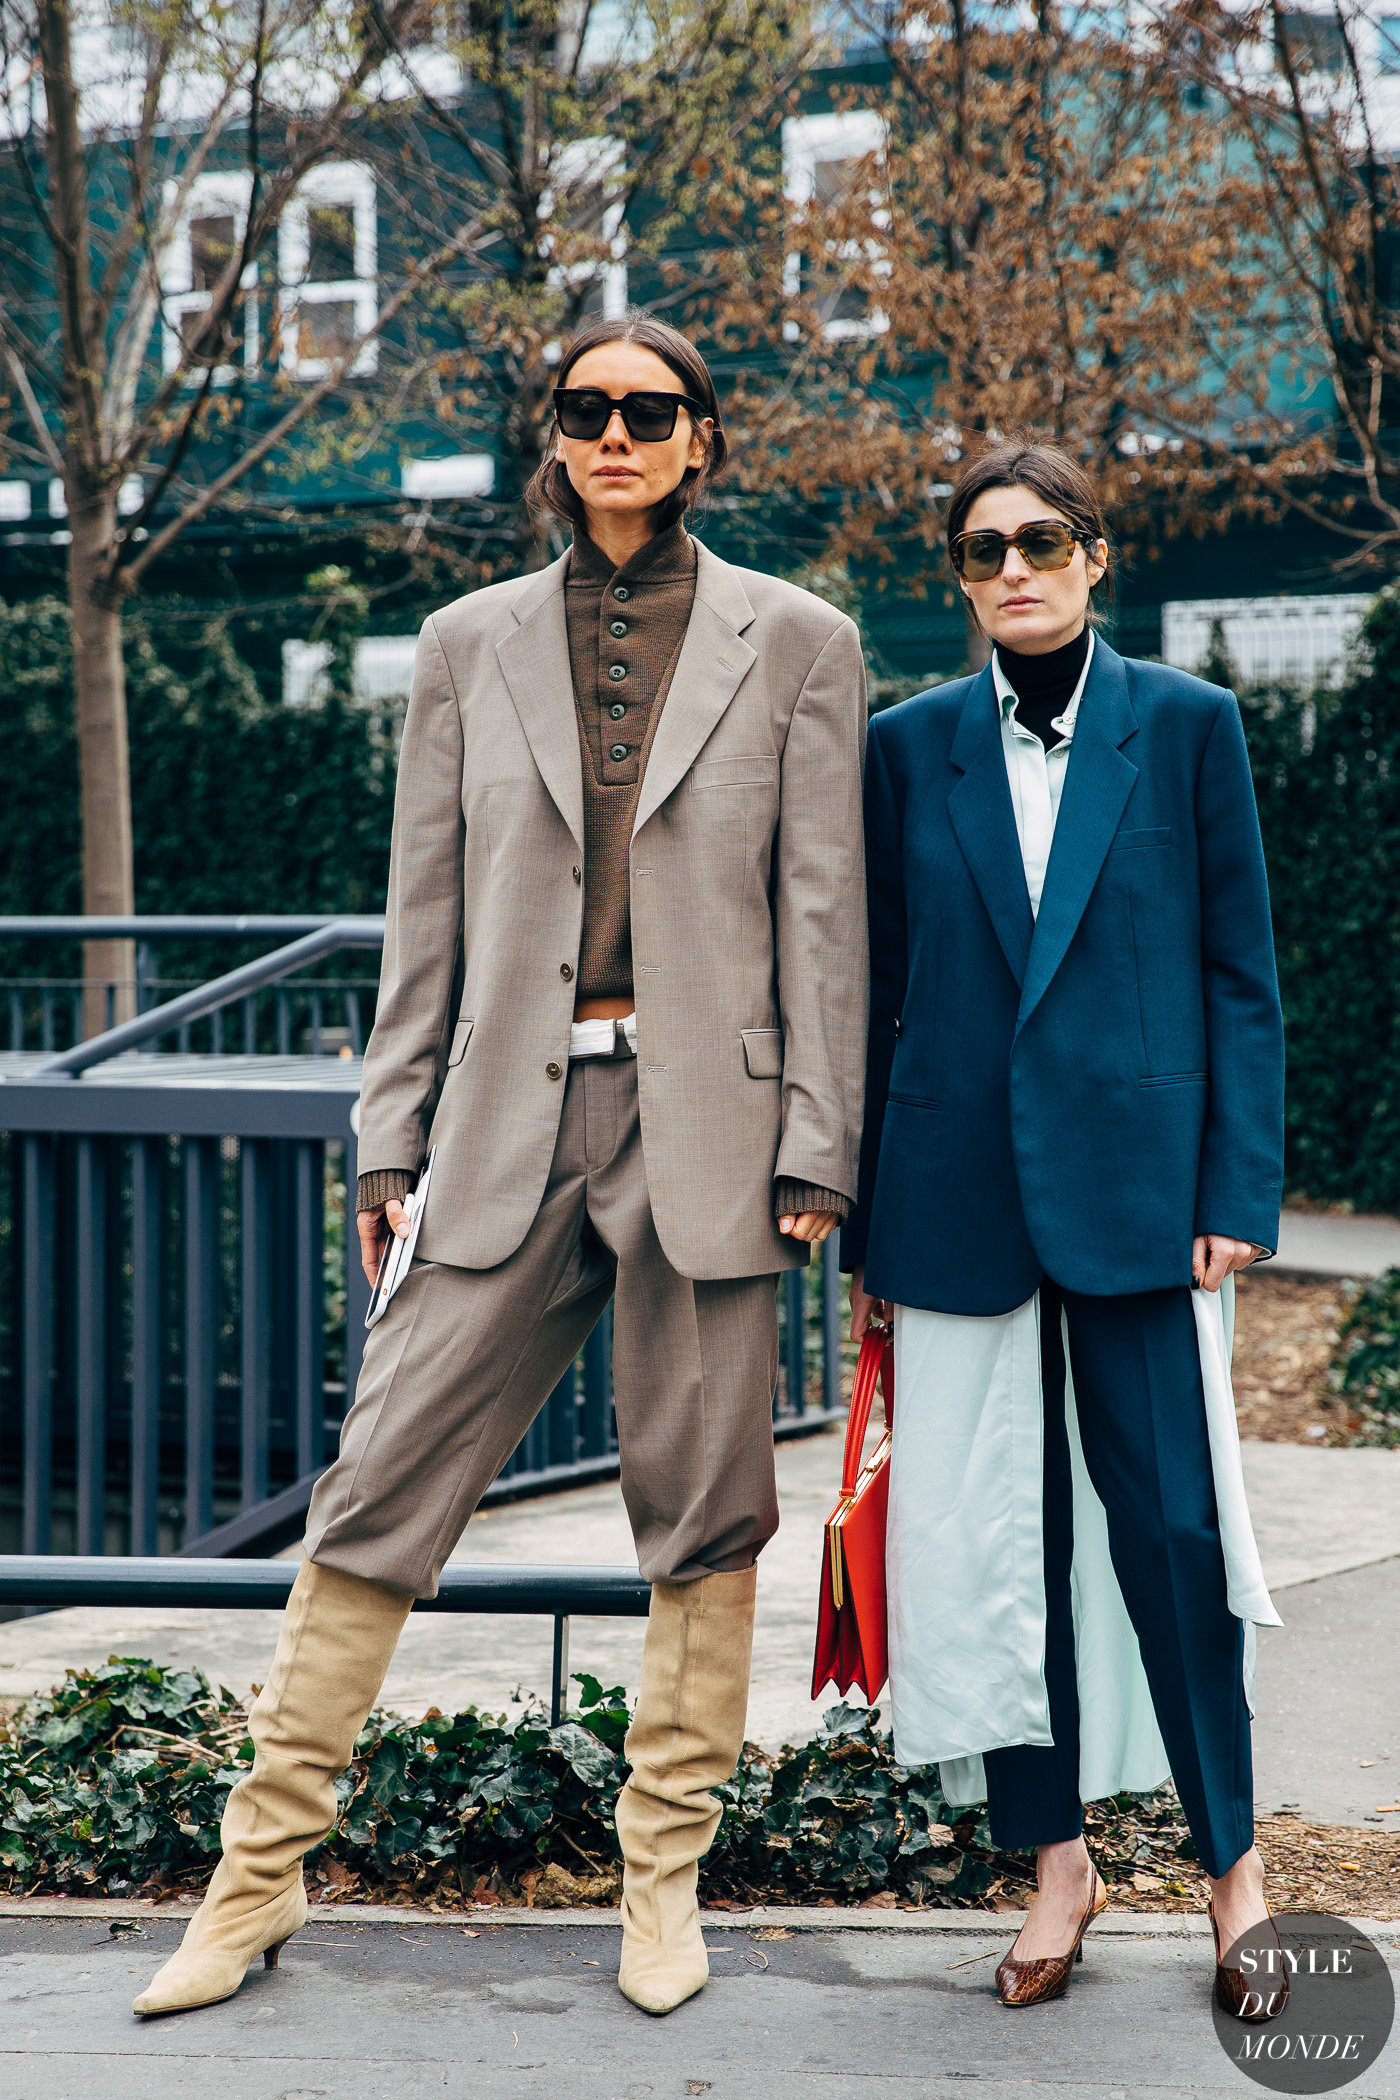 Julie Pelipas and Irina Linovich by STYLEDUMONDE Street Style Fashion Photography20190228_48A3300